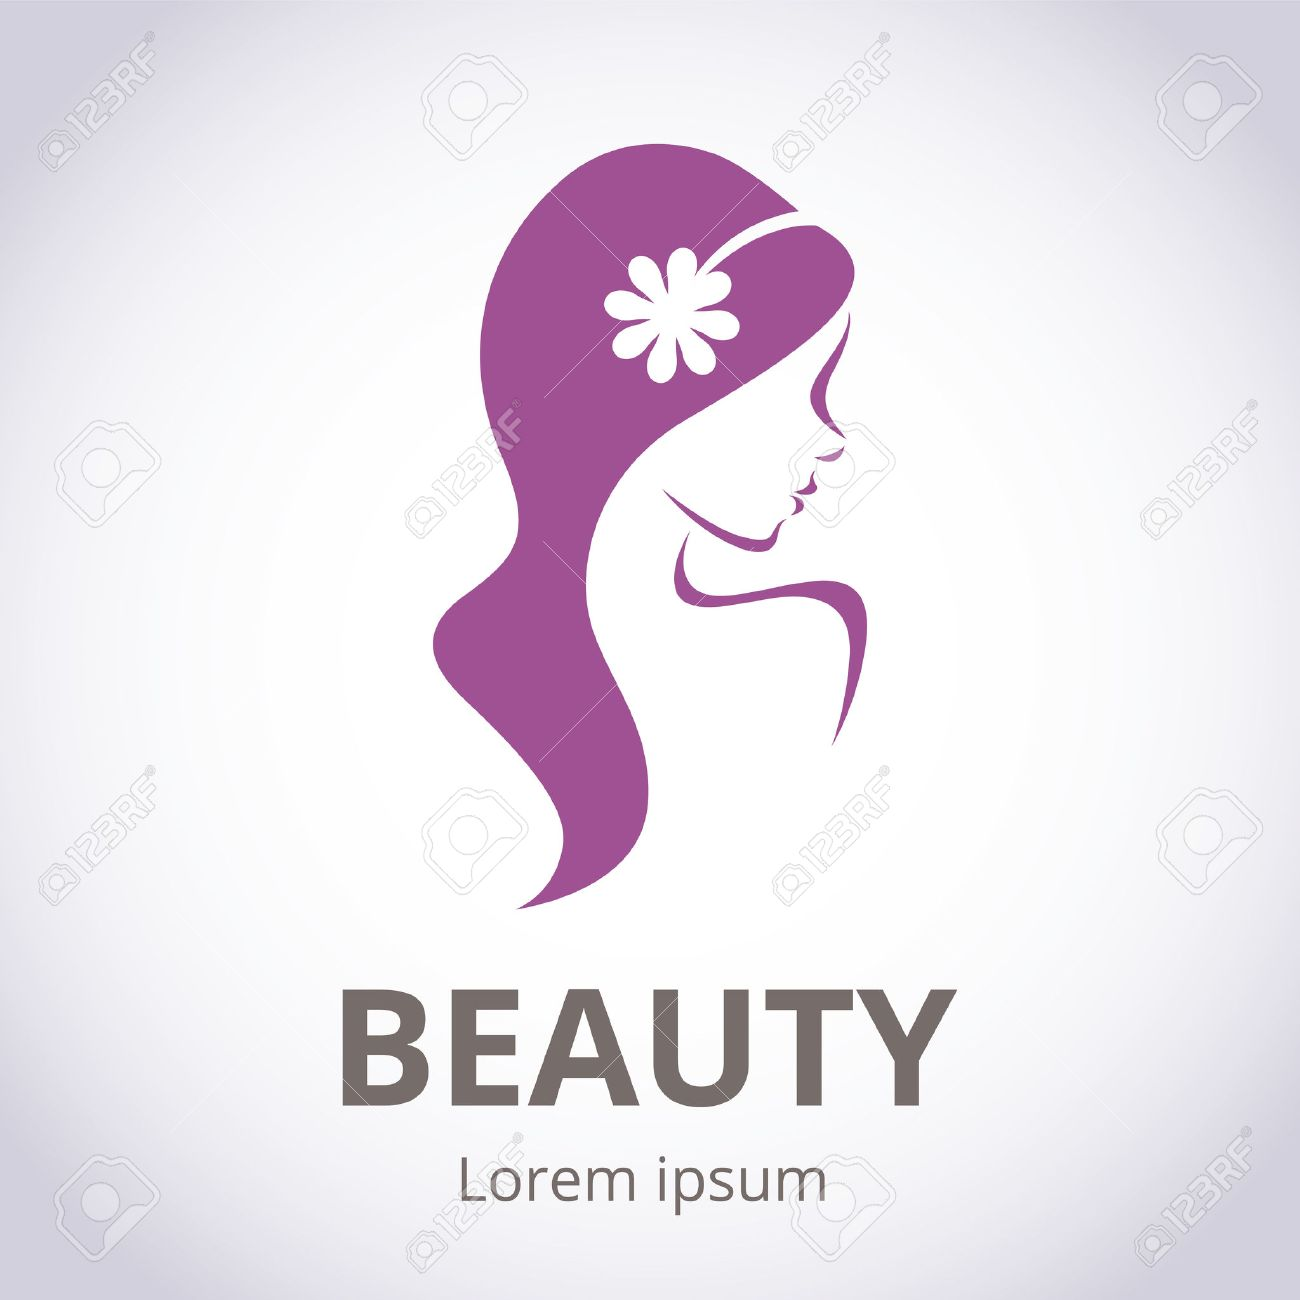 Abstract logo for beauty salon stylized profile of a young beautiful woman Stock Vector - 46569215